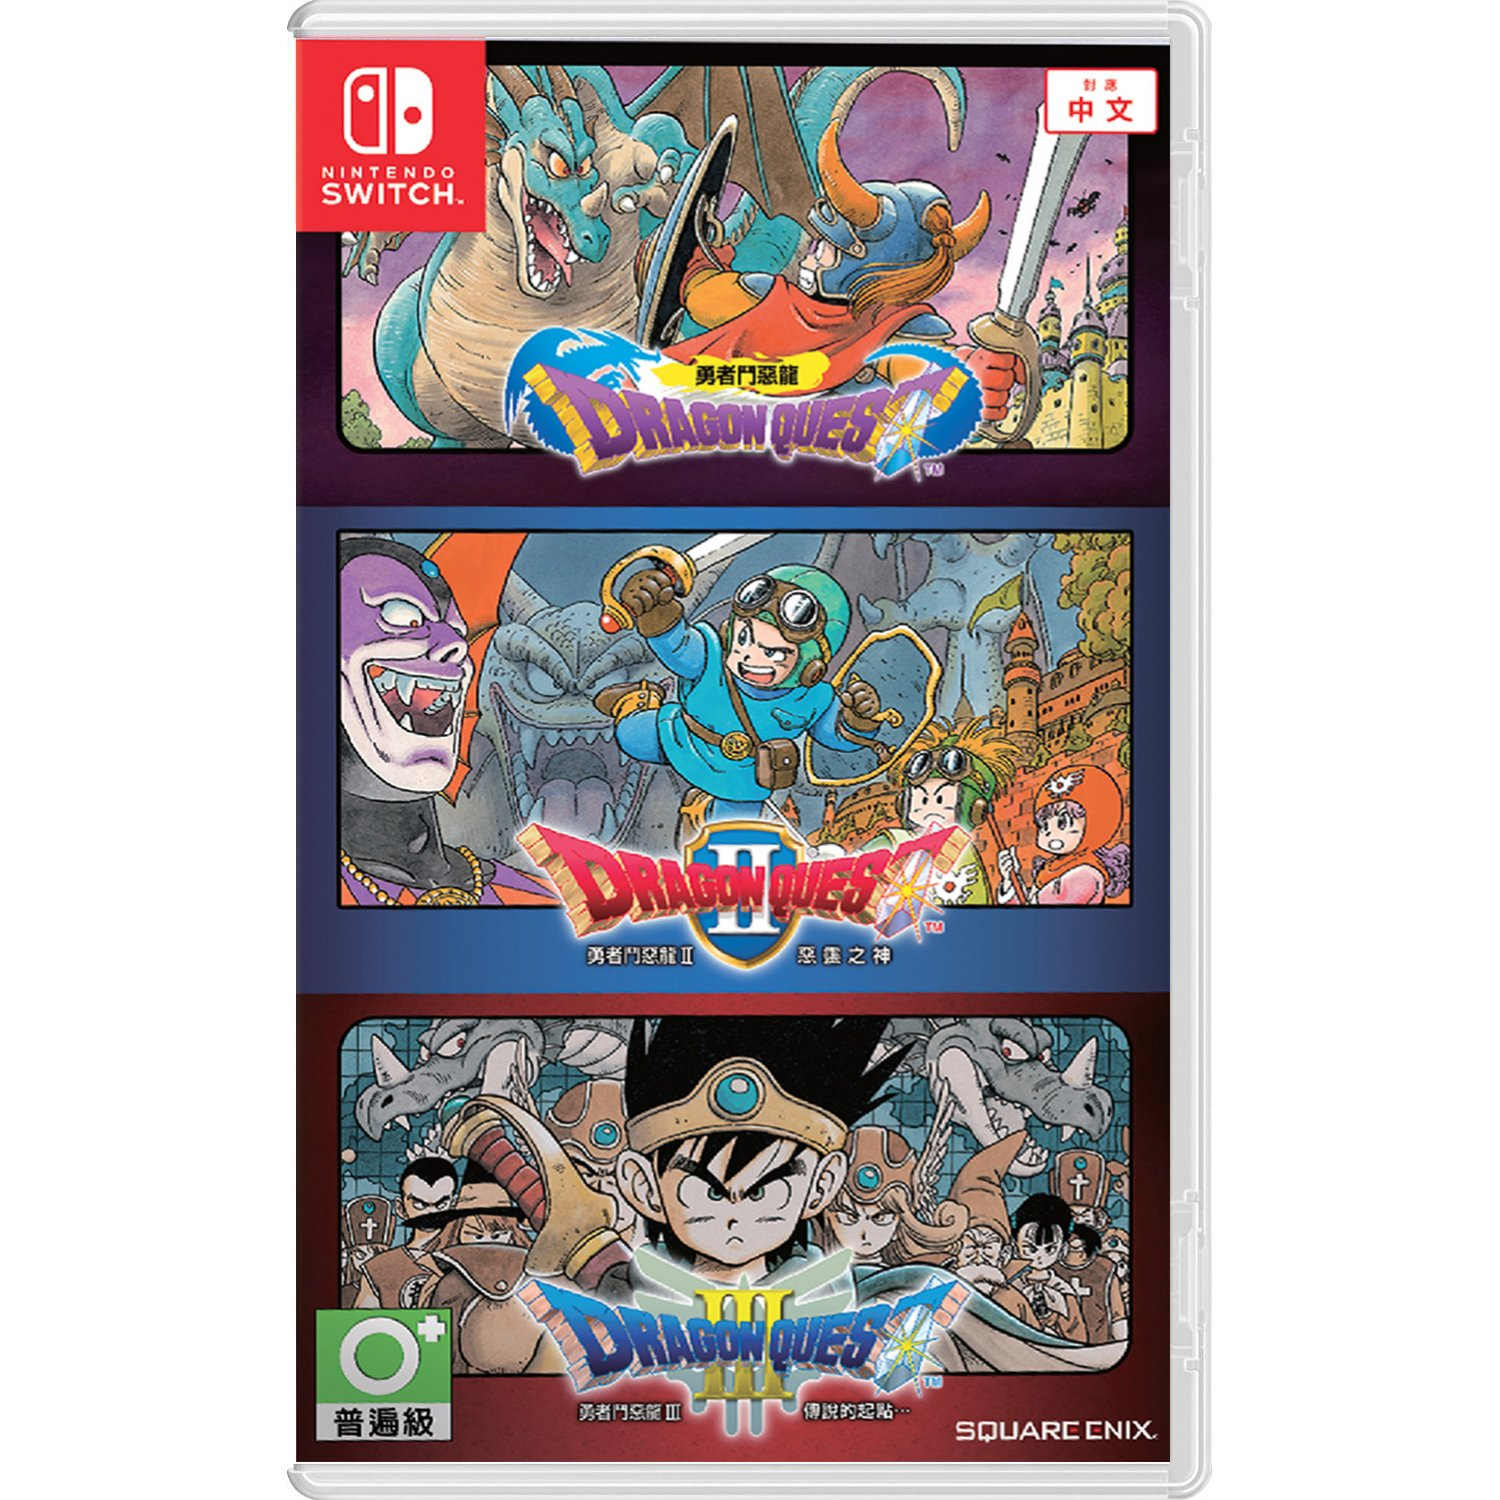 Dragon Quest 1+2+3 Collection (angol felirattal)